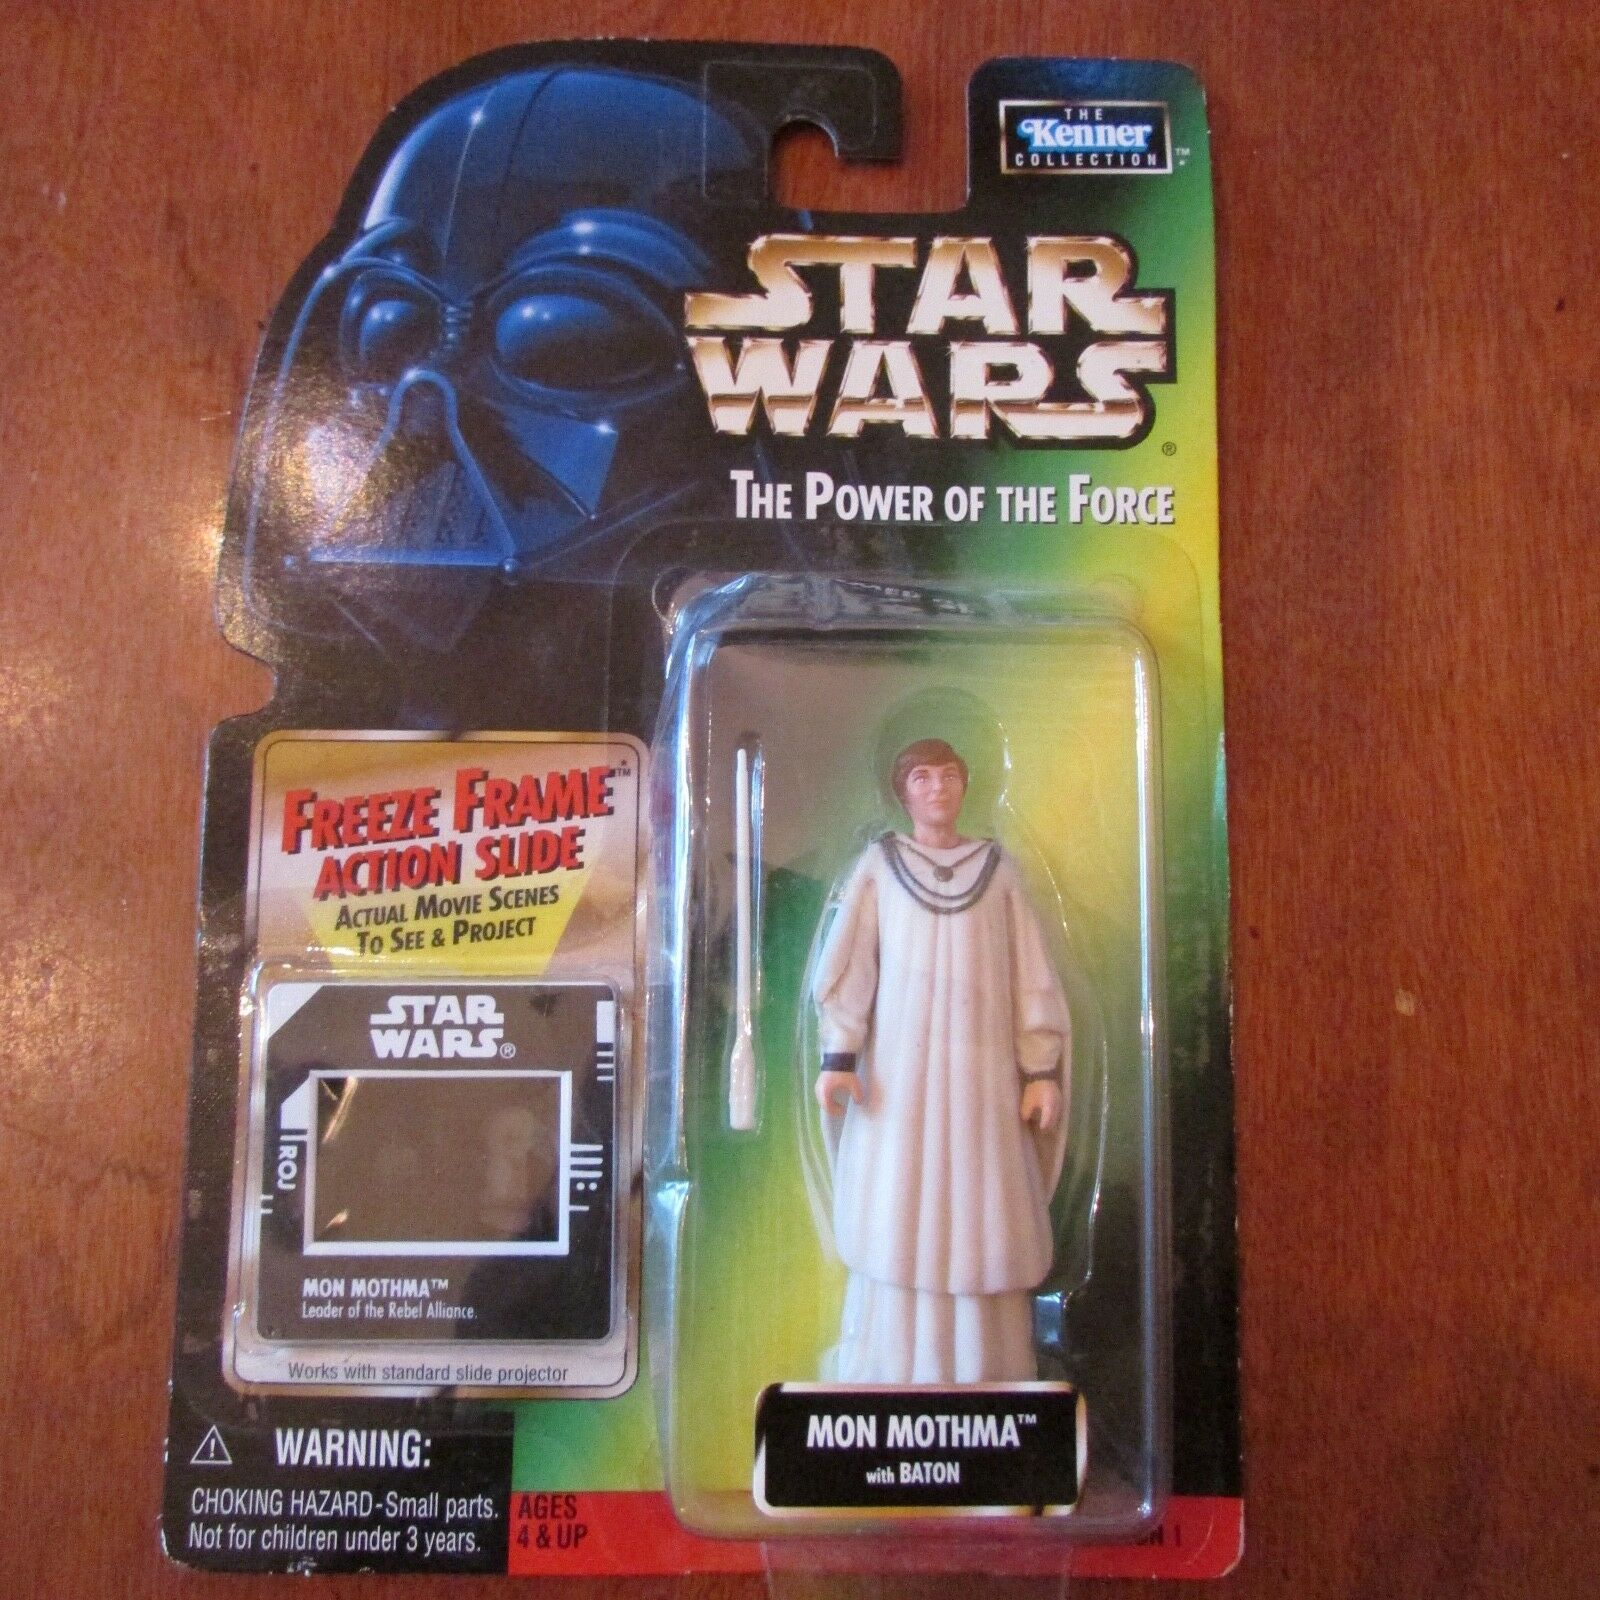 StarWars collection : Star Wars Figurine - new in box - unopened - MON MOTHMA